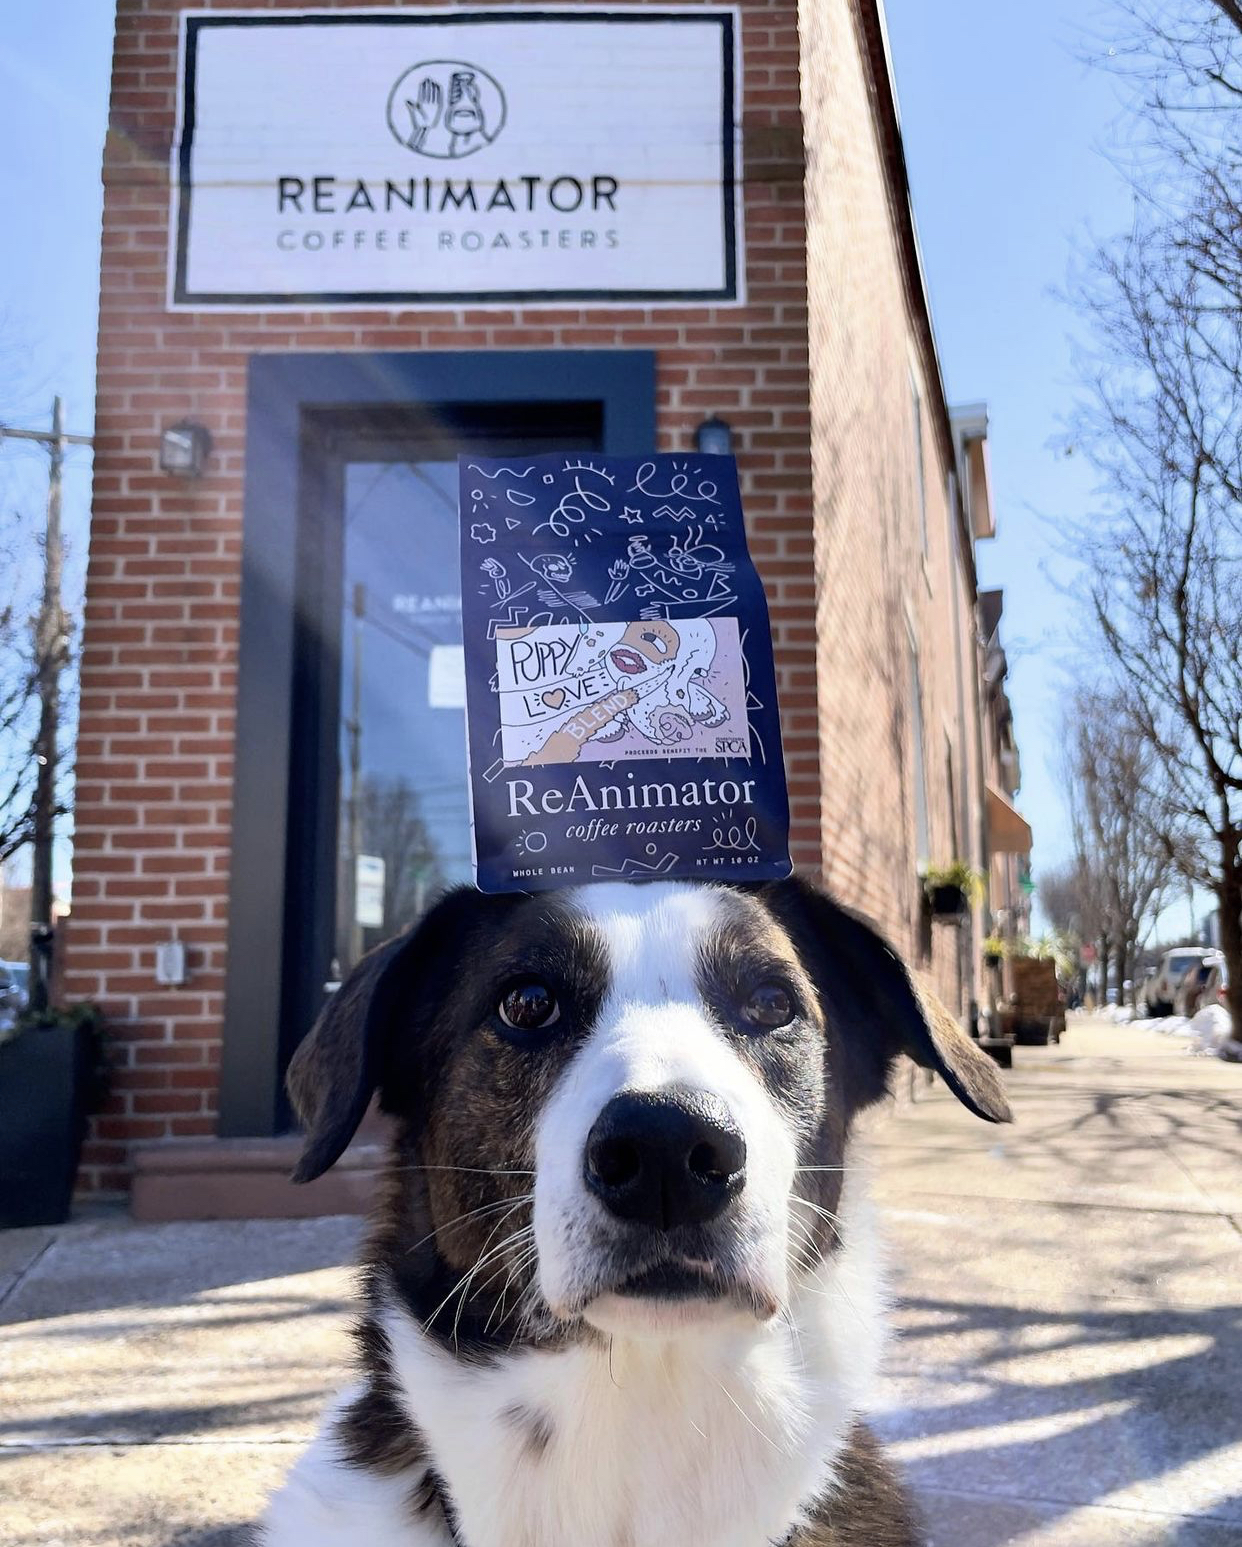 A Very Good Boy shows off Reanimator's special edition Puppy Love blend.